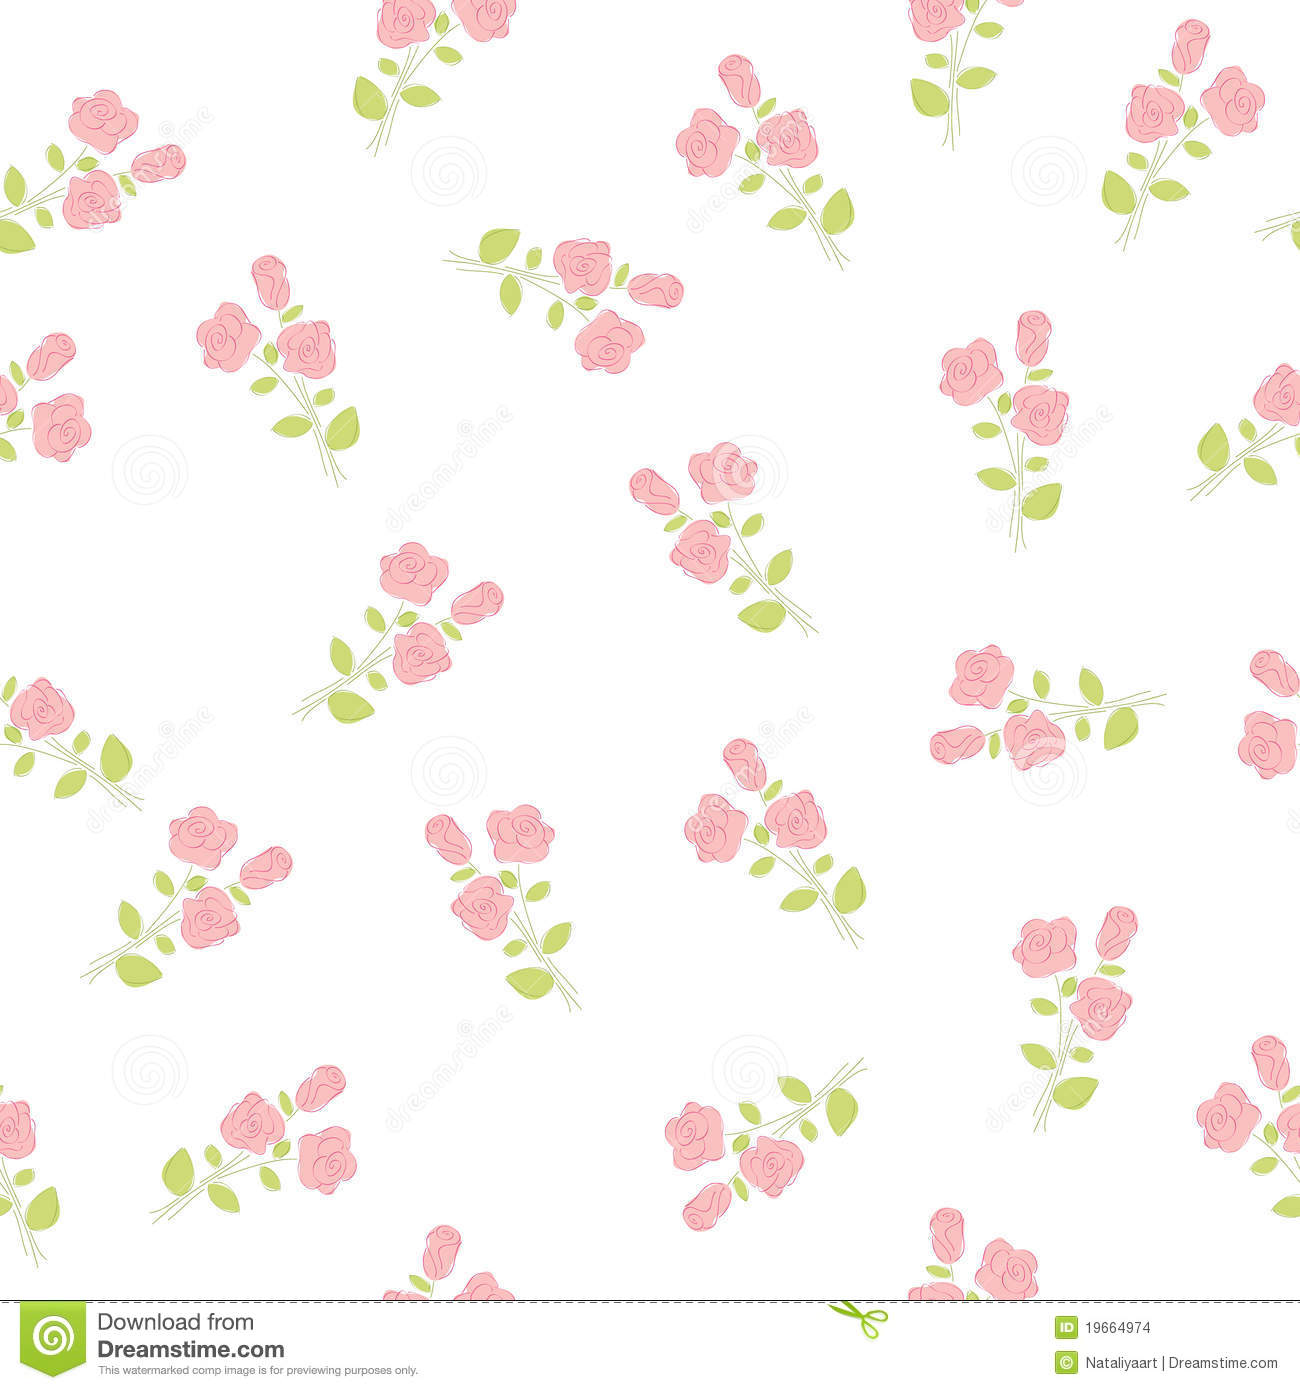 Cute Bordered Pastel Flower Wallpaper Seamless Floral Wallpaper Stock Images Image 19664974